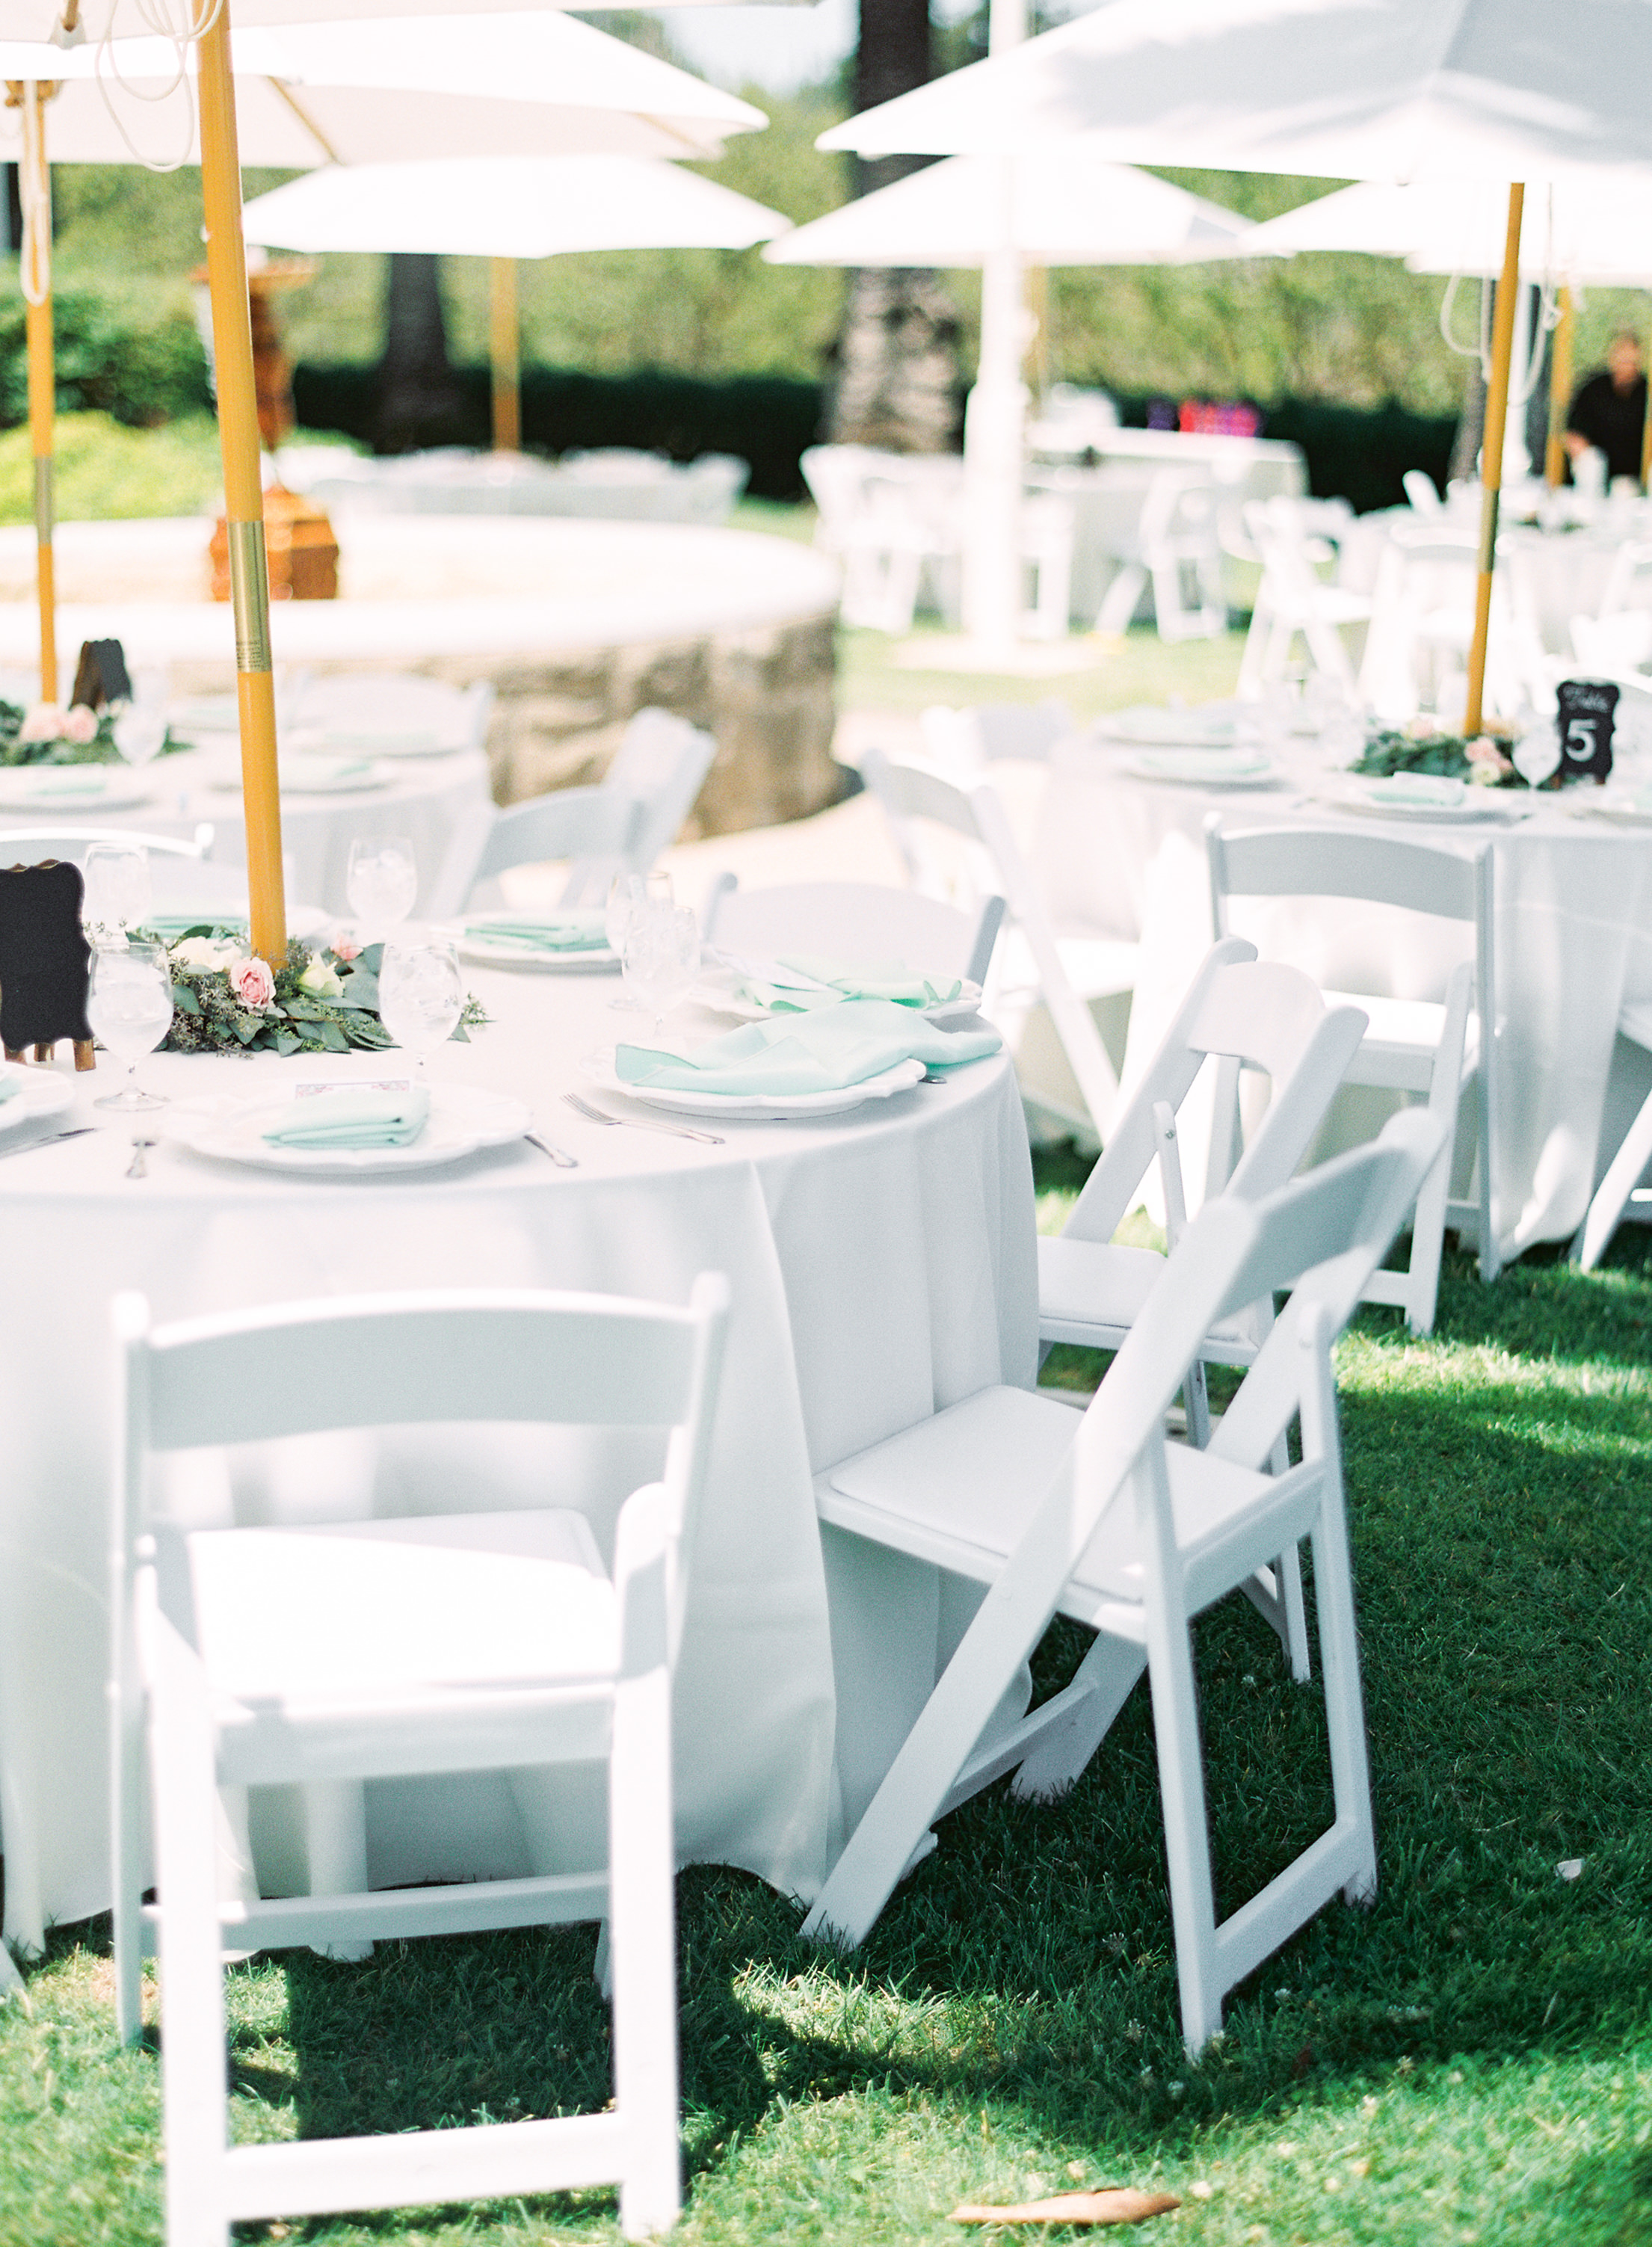 southern-inspired-wedding-at-ravenswood-historic-site-009-7.jpg